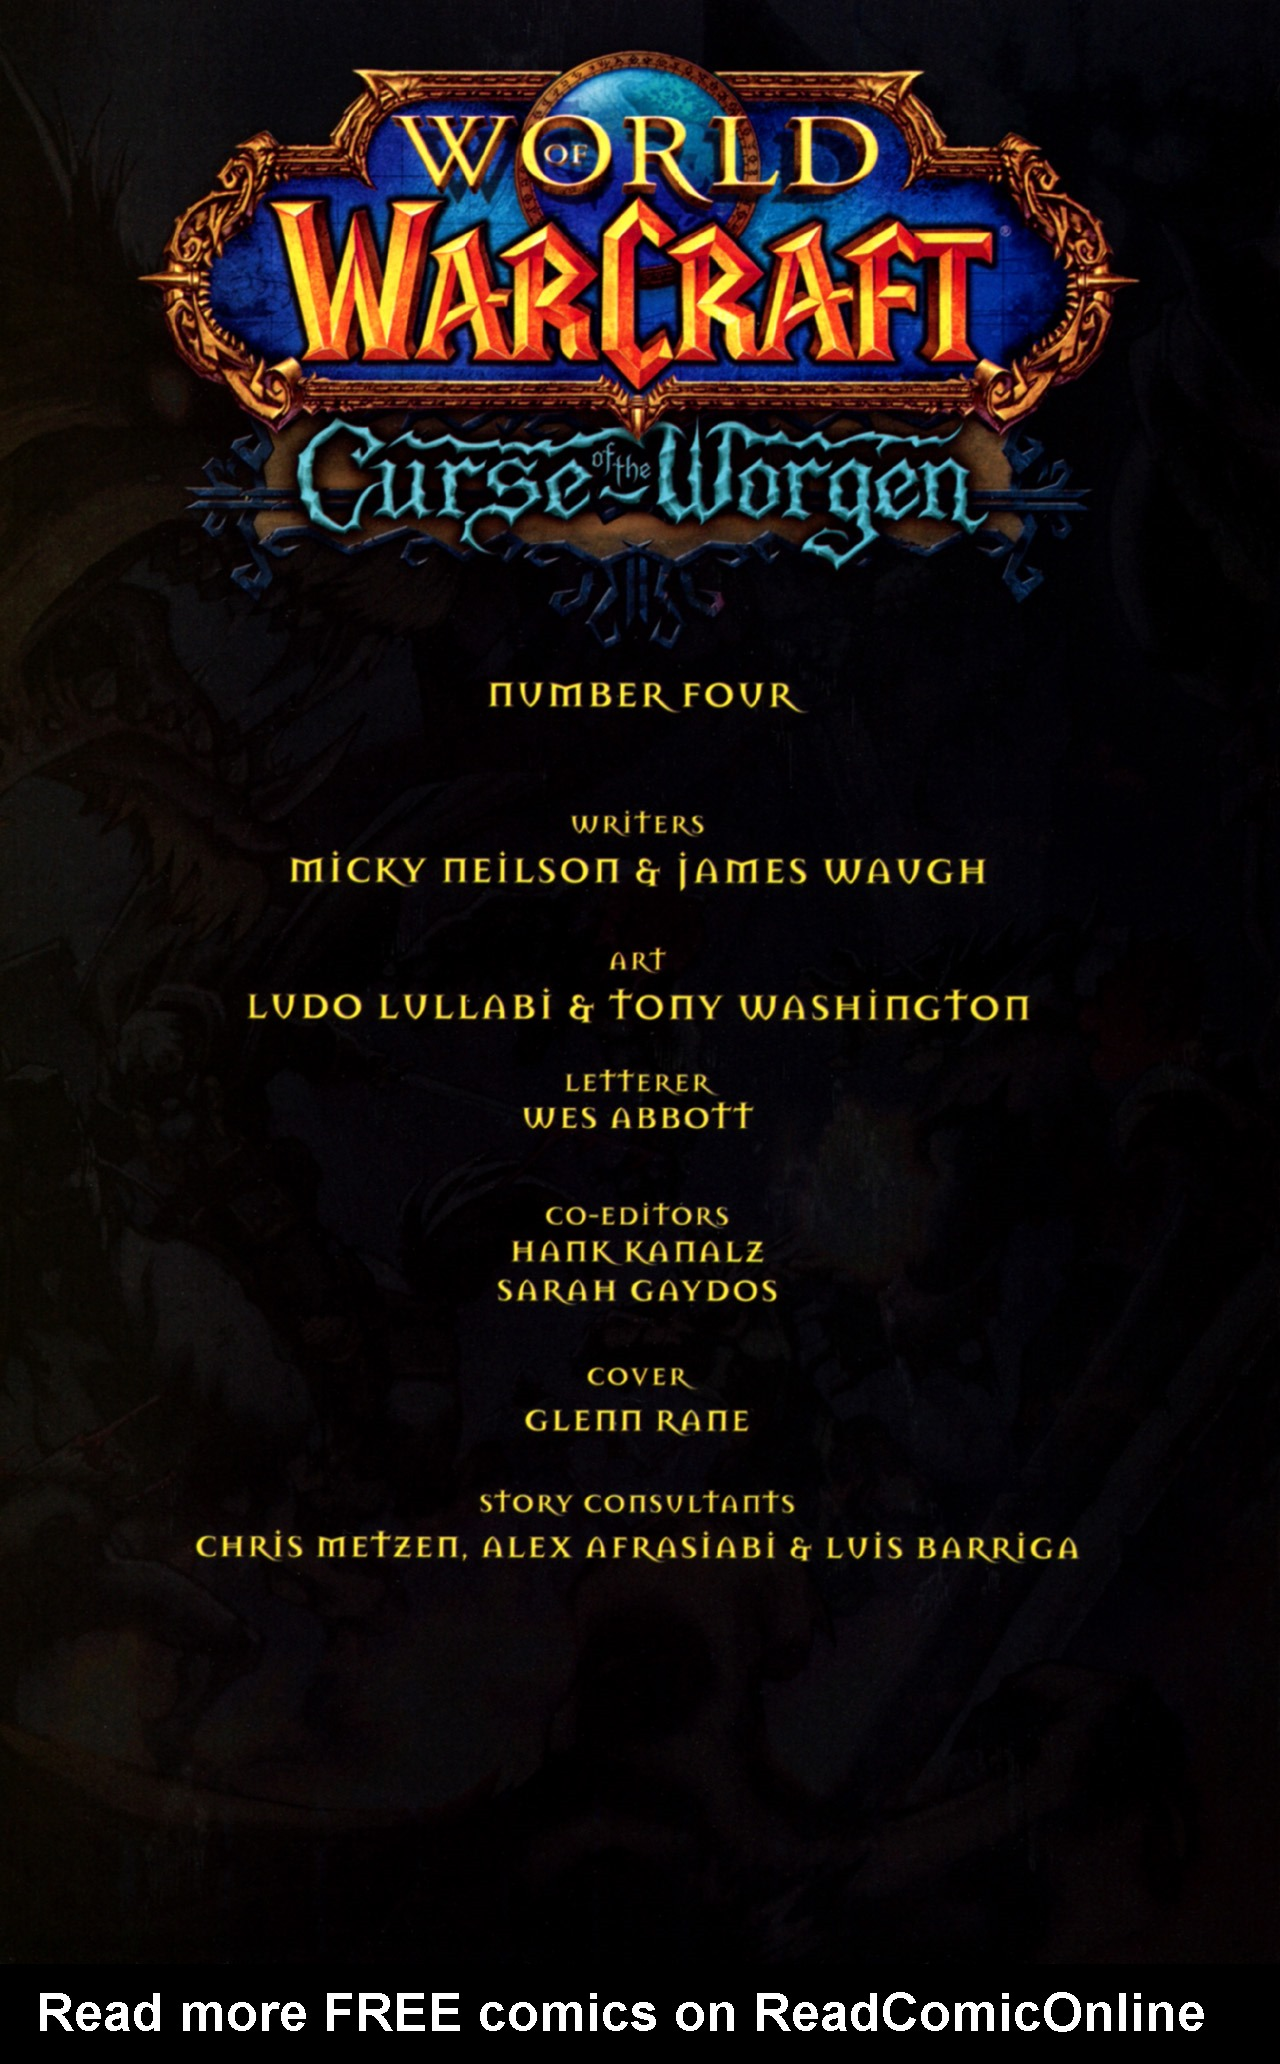 Read online World of Warcraft: Curse of the Worgen comic -  Issue #4 - 2